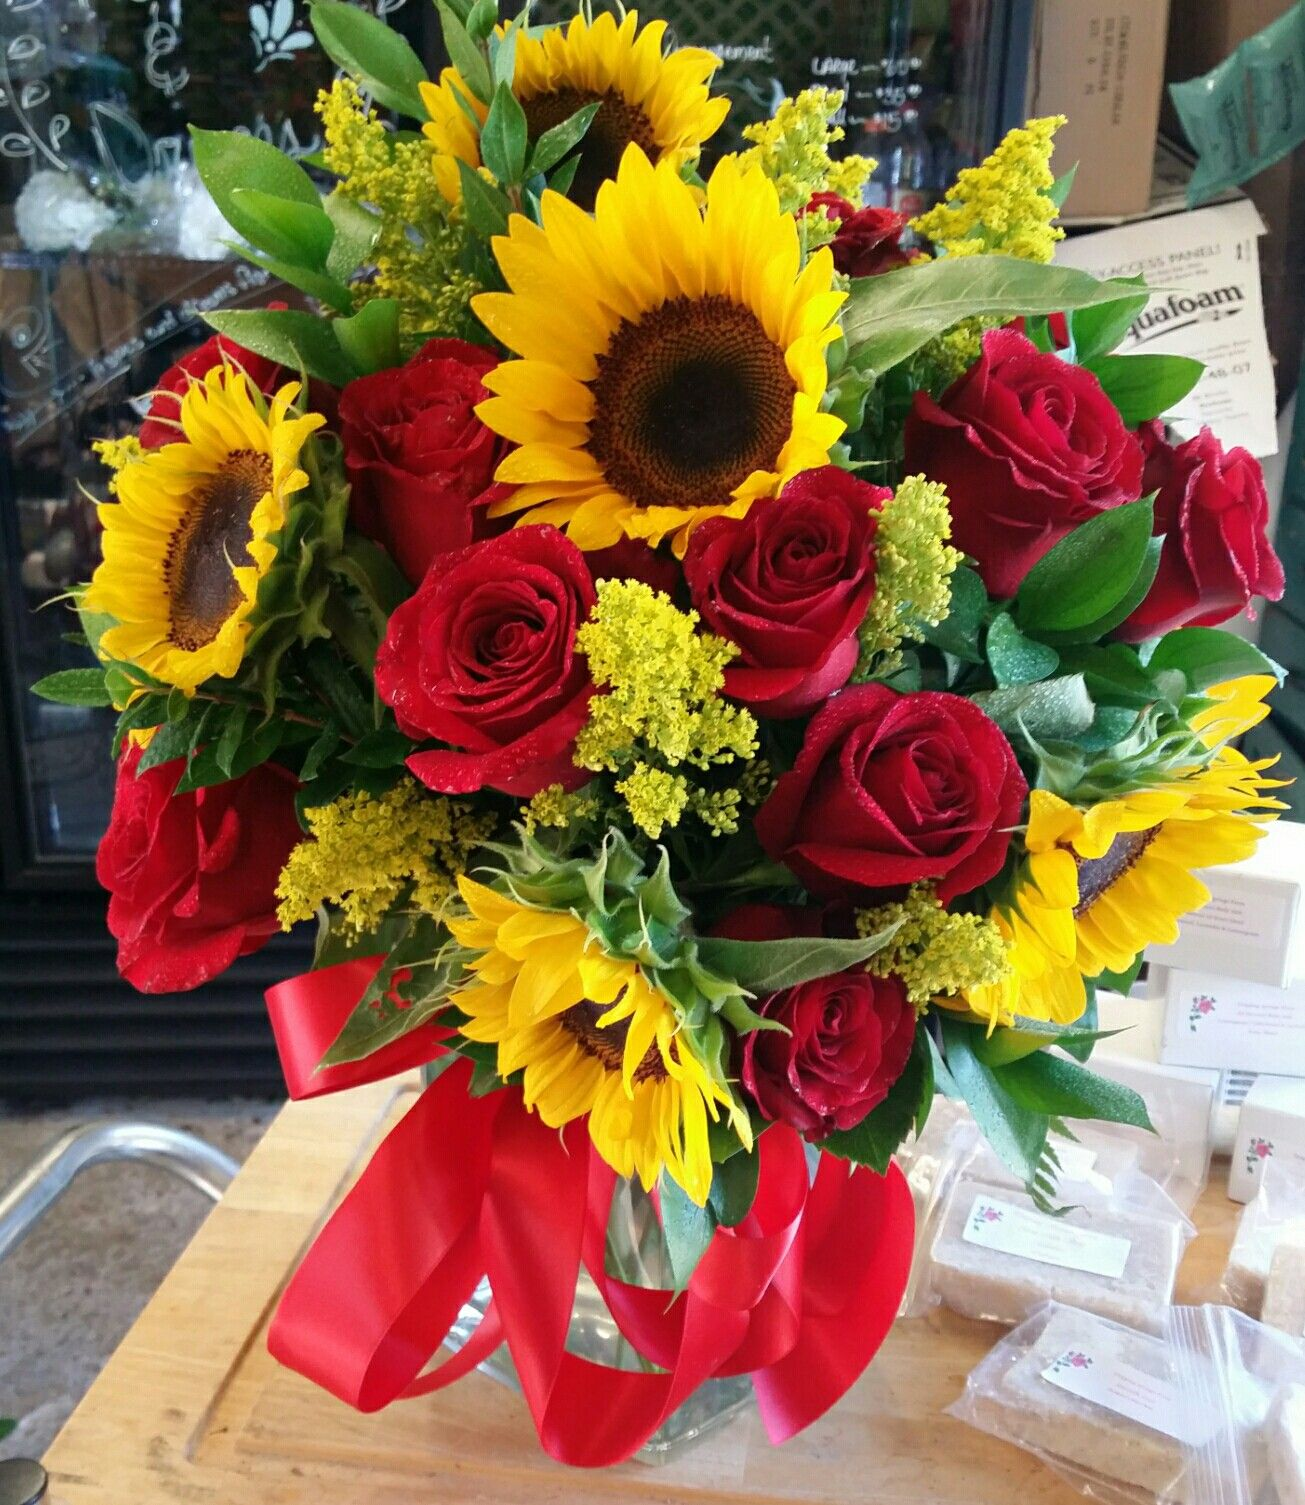 Red Roses And Sunflowers In A Square Vase Birthday Flowers Bouquet Red Roses And Sunflowers Sunflowers And Roses